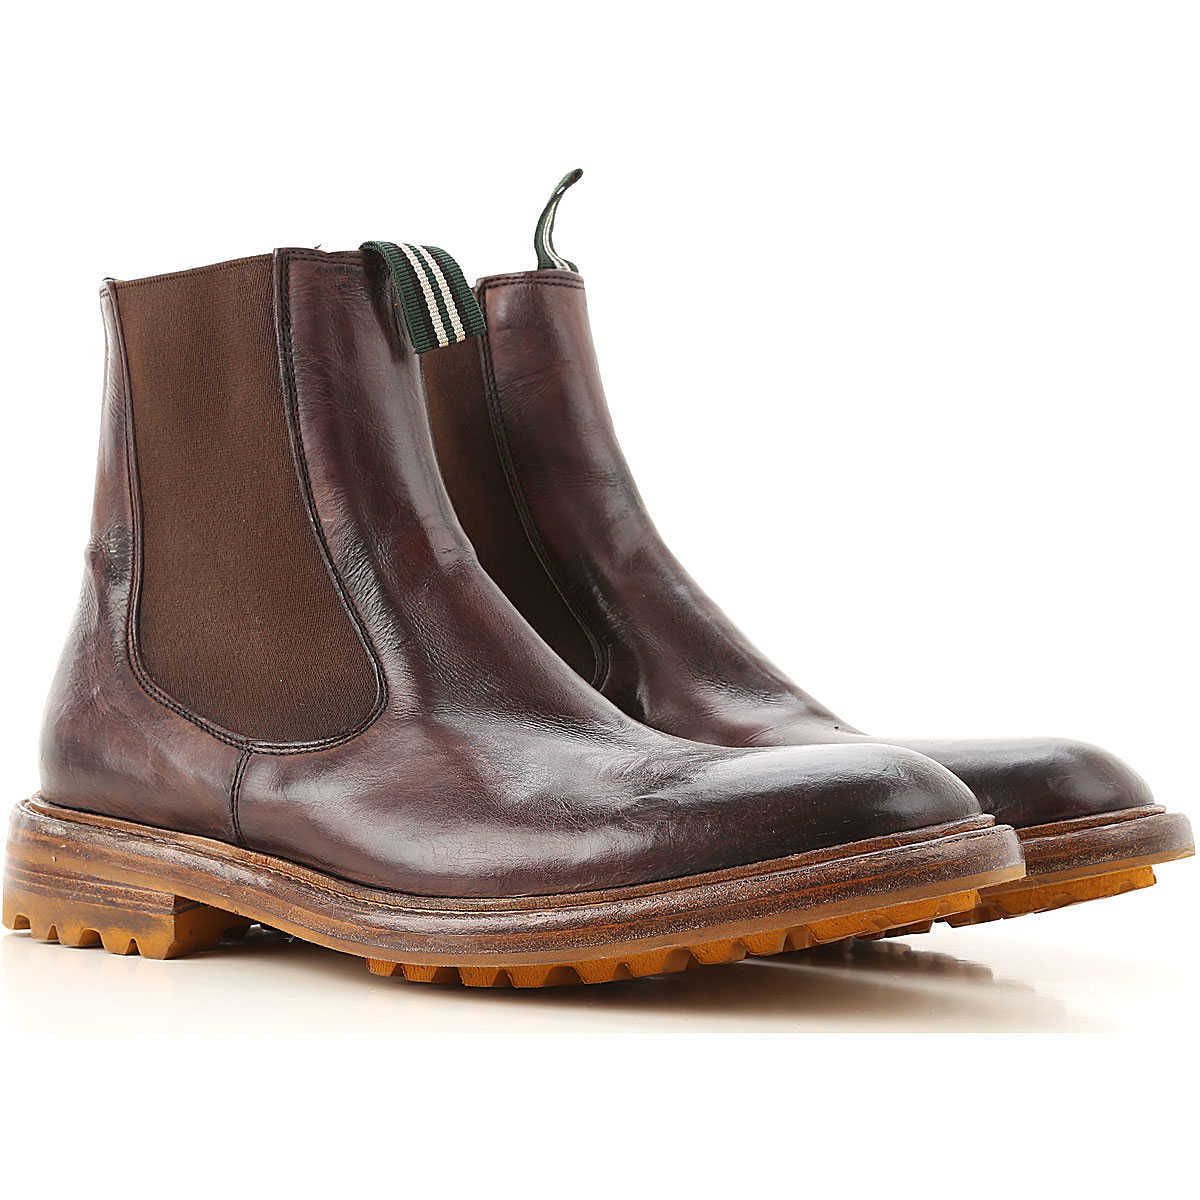 Green George Boots for Men Booties On Sale in Outlet - GOOFASH